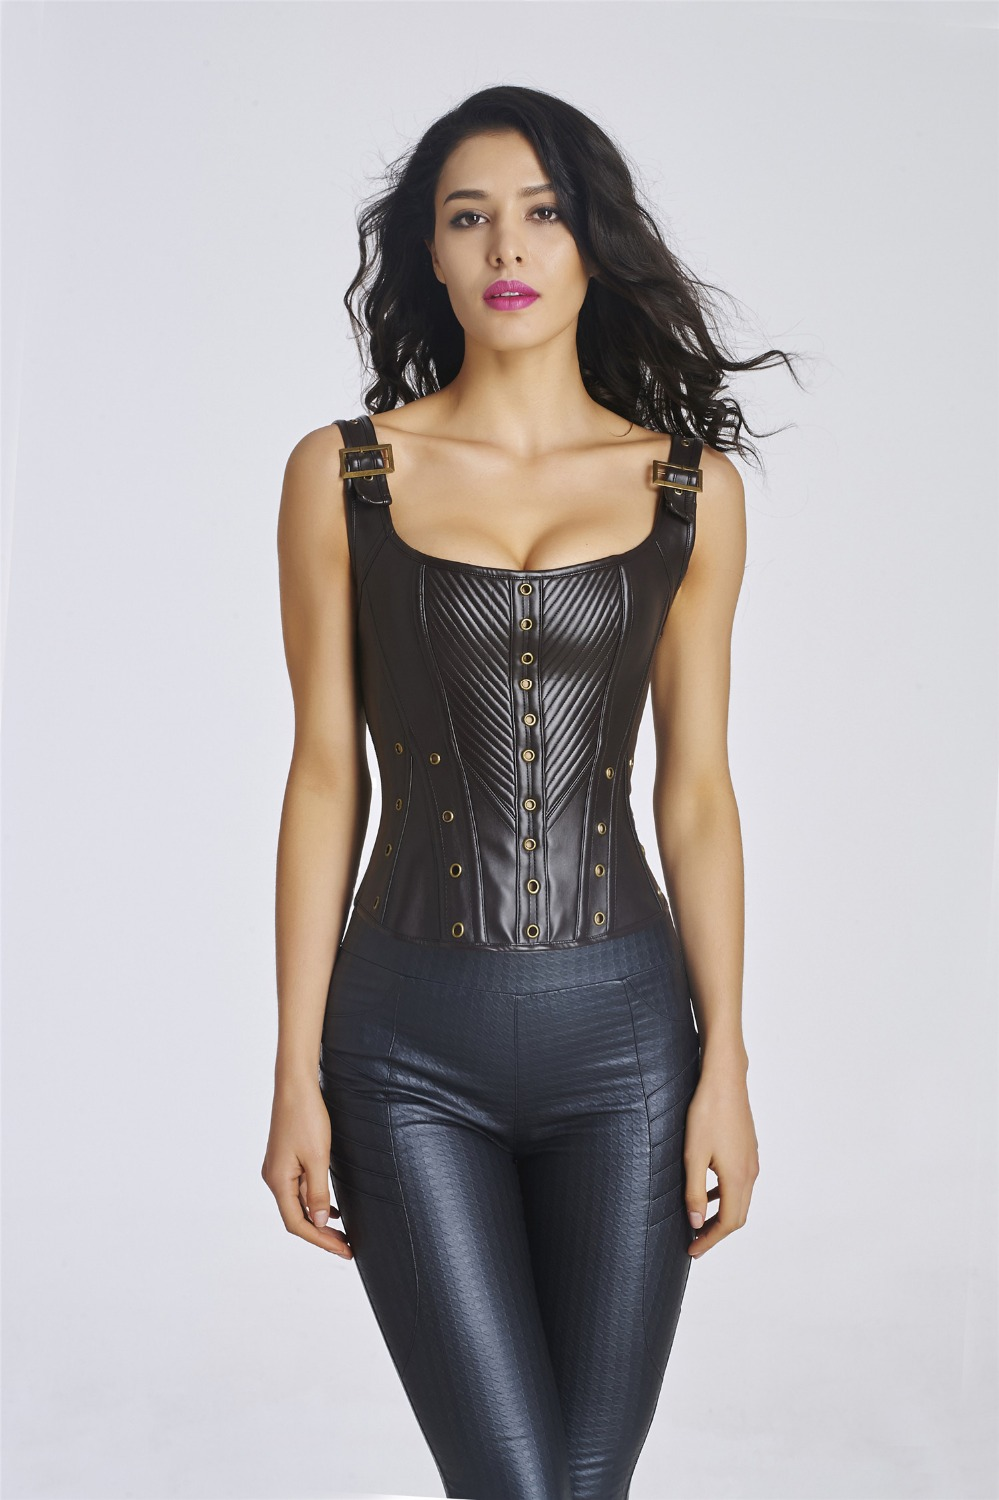 95b4642ca93fd free shipping Women Corset Top Waist train Corsets Gothic Corselet corpetes  Overbust Plus Size sexy corsets and bustiers-in Bodysuits from Underwear ...